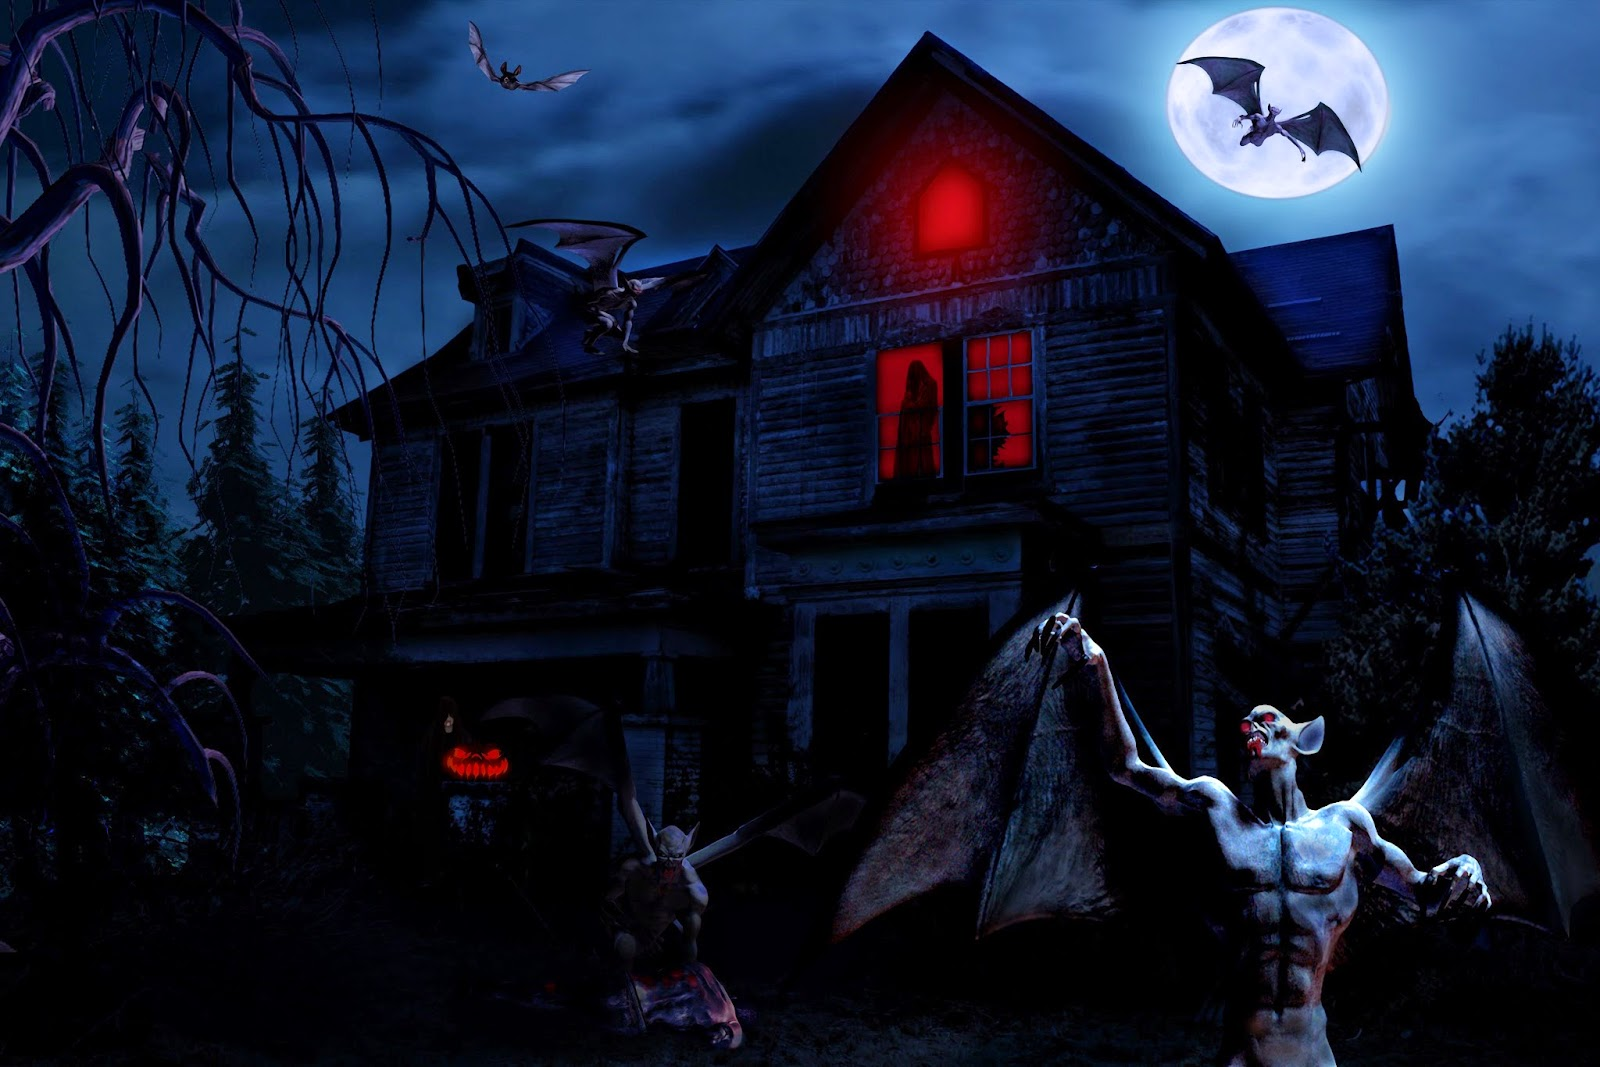 Haunted-dark-house-evil-ghost--full-moon-bat-images-for-halloween-HD-photos.jpg